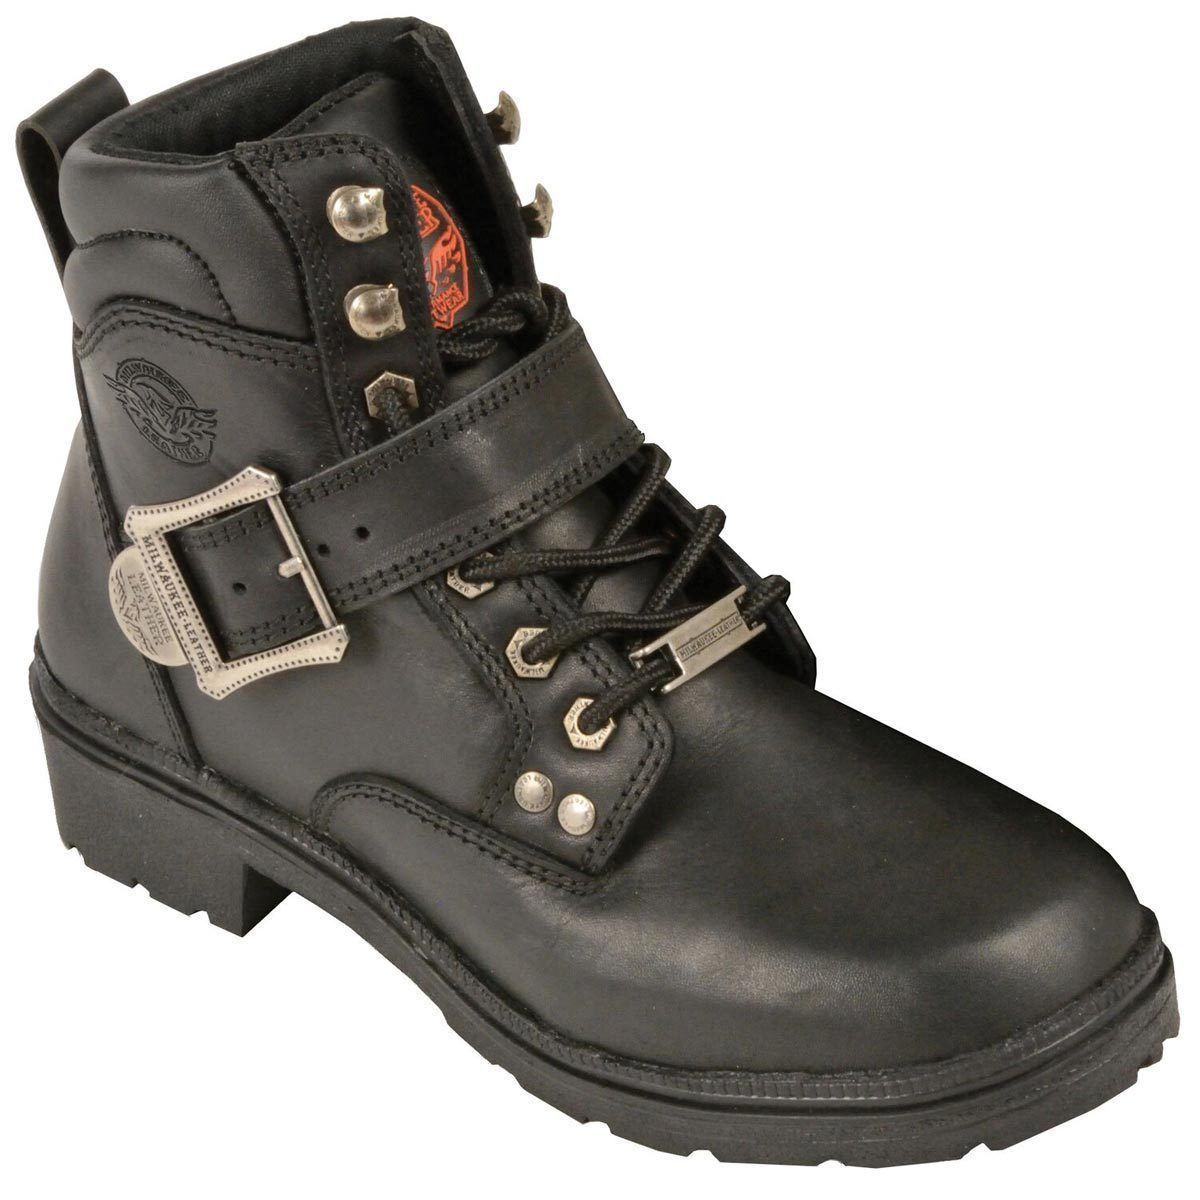 5355dfd412a1 Short Boots And Shoes + Free Shipping - motorcyclecenter